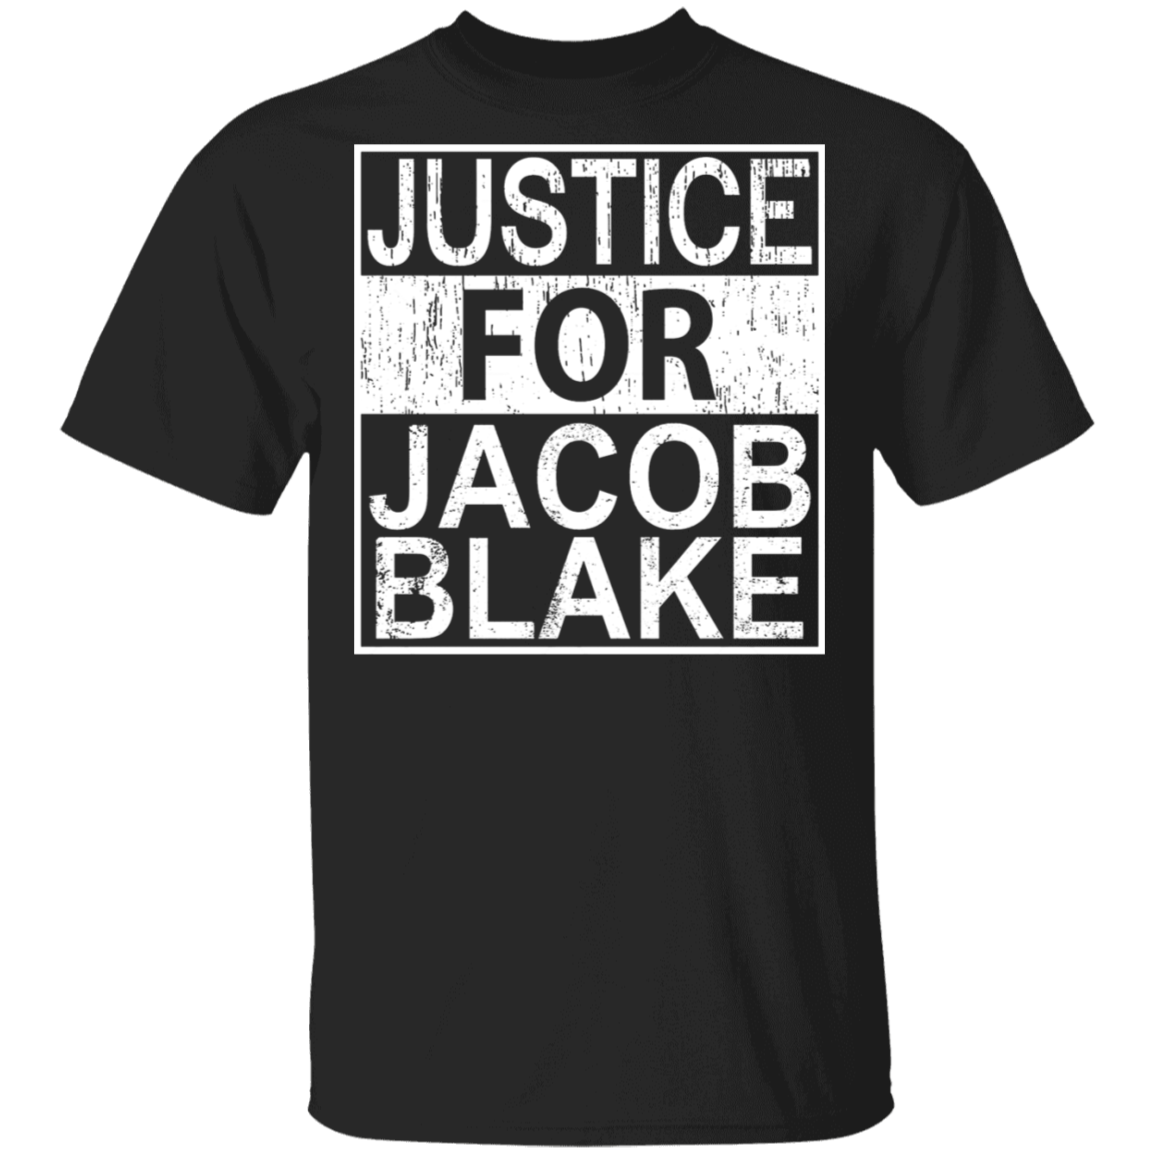 Justice For Jacob Blake T-Shirt Nba Black Lives Matter Shirt